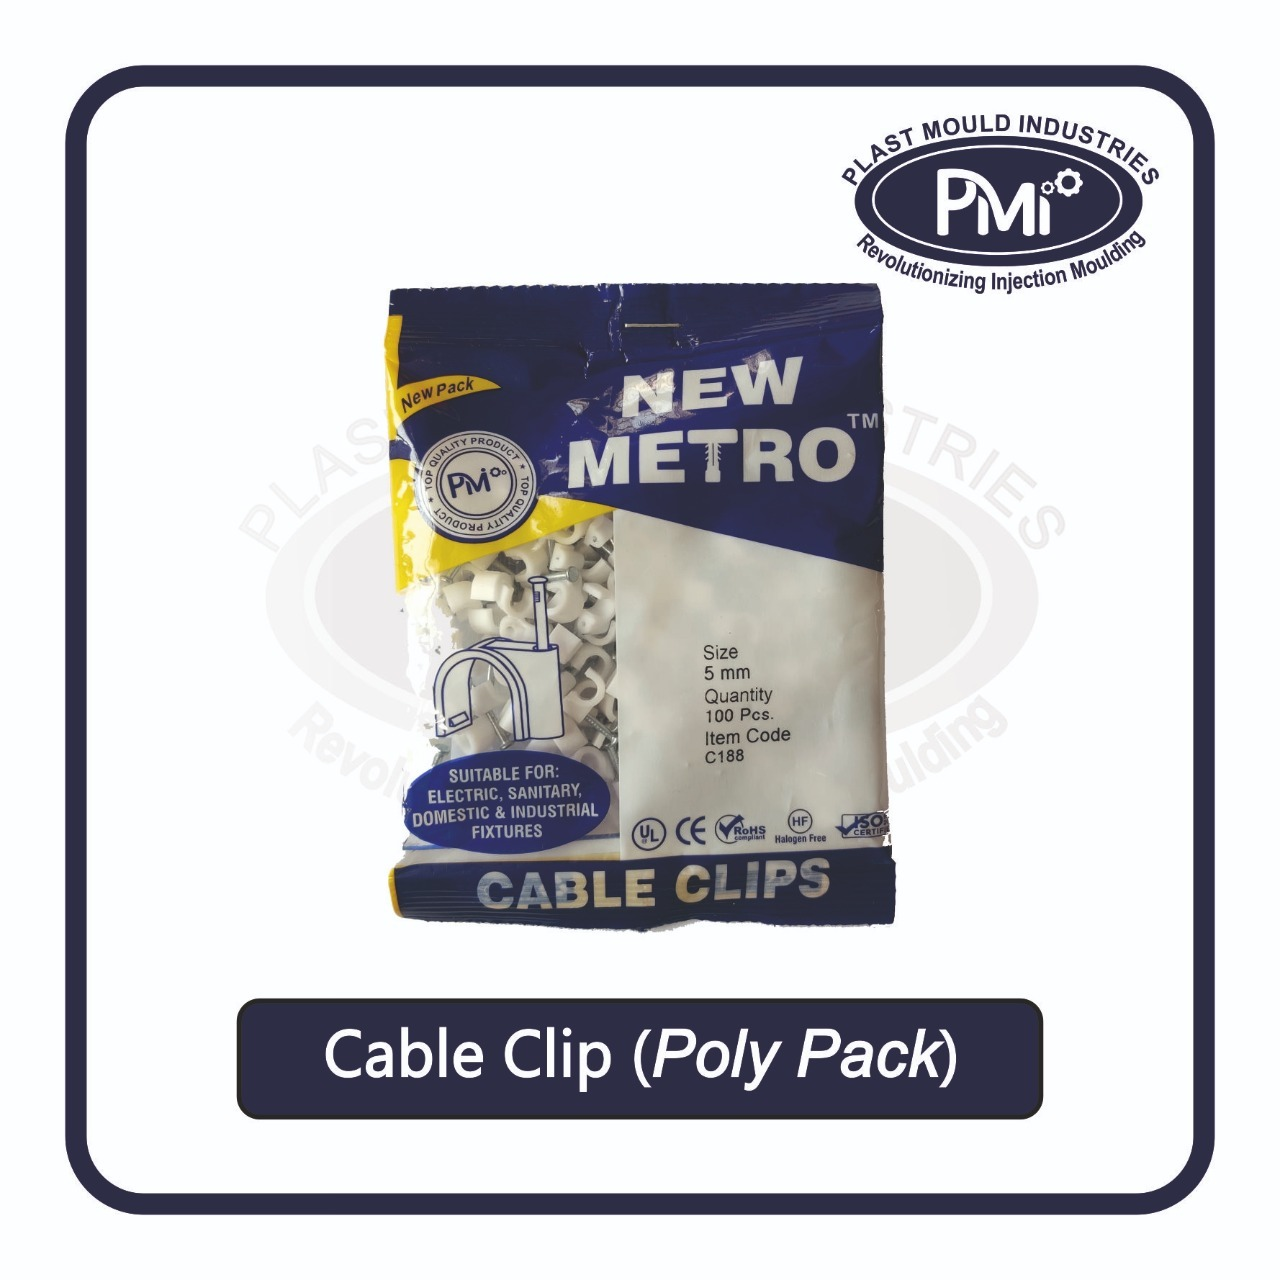 16 mm Cable Clip